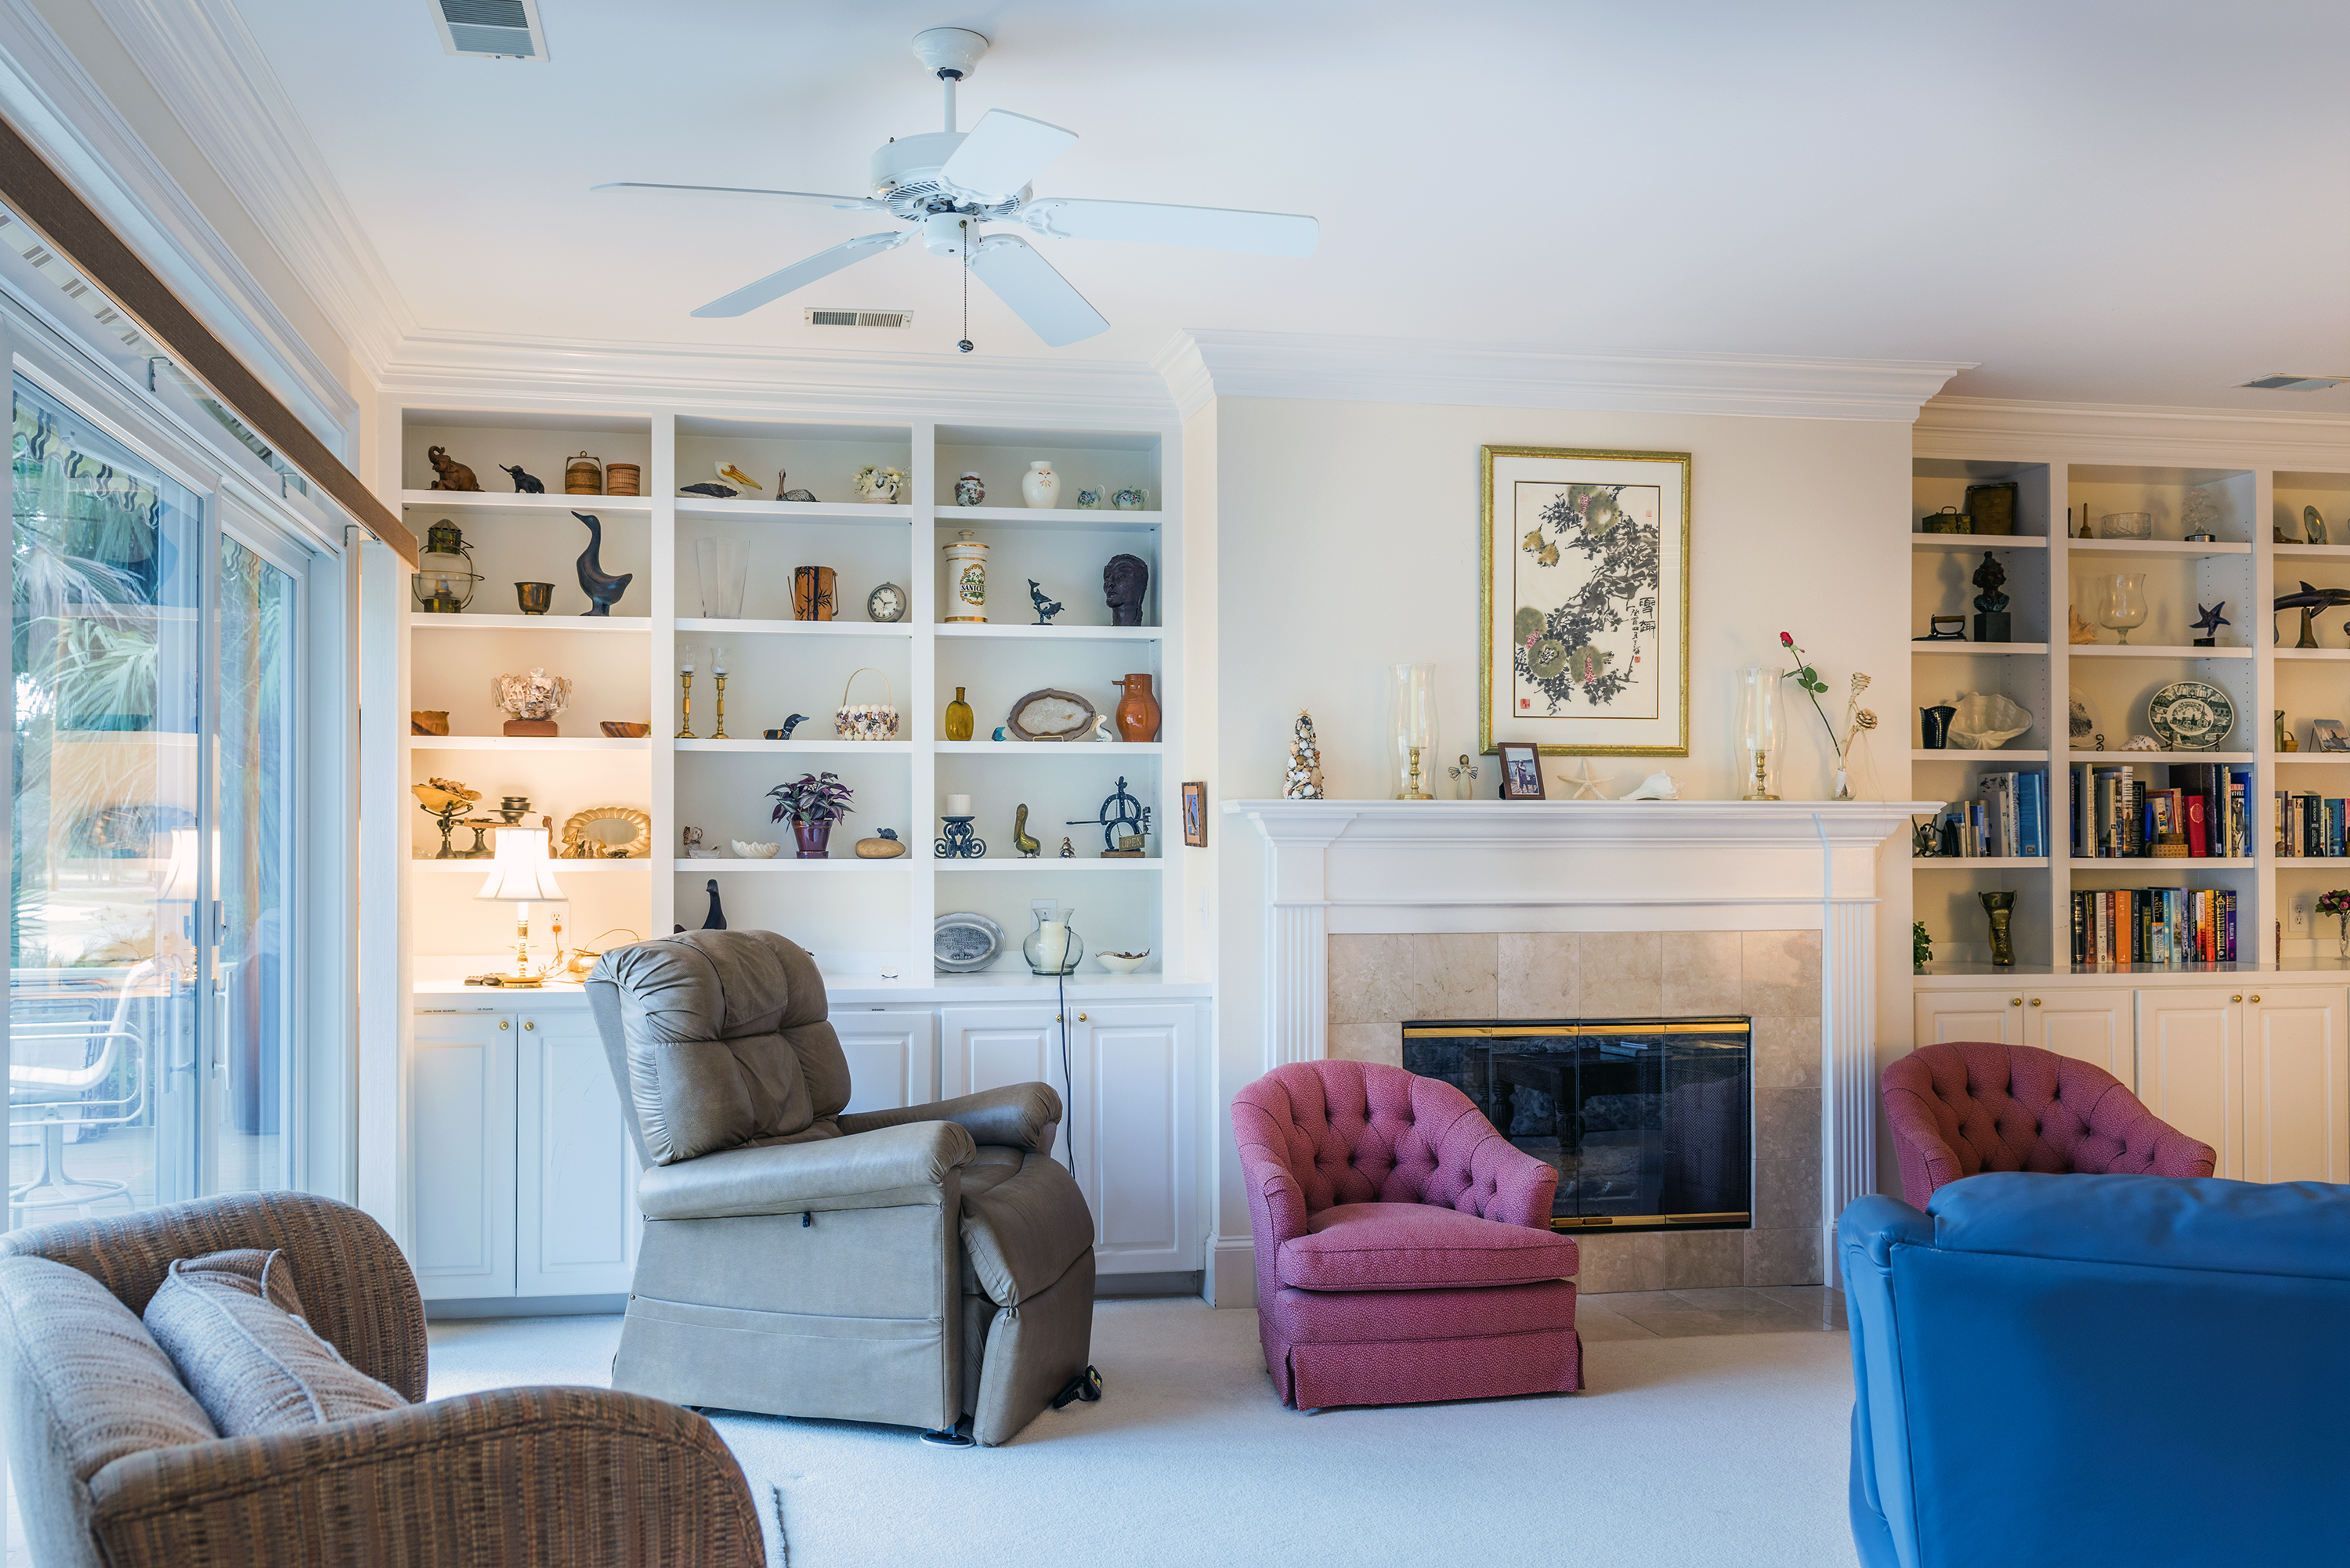 If you need quieter time, there is plenty of seating room in the living room.  The sliders provide captivating golf course views!